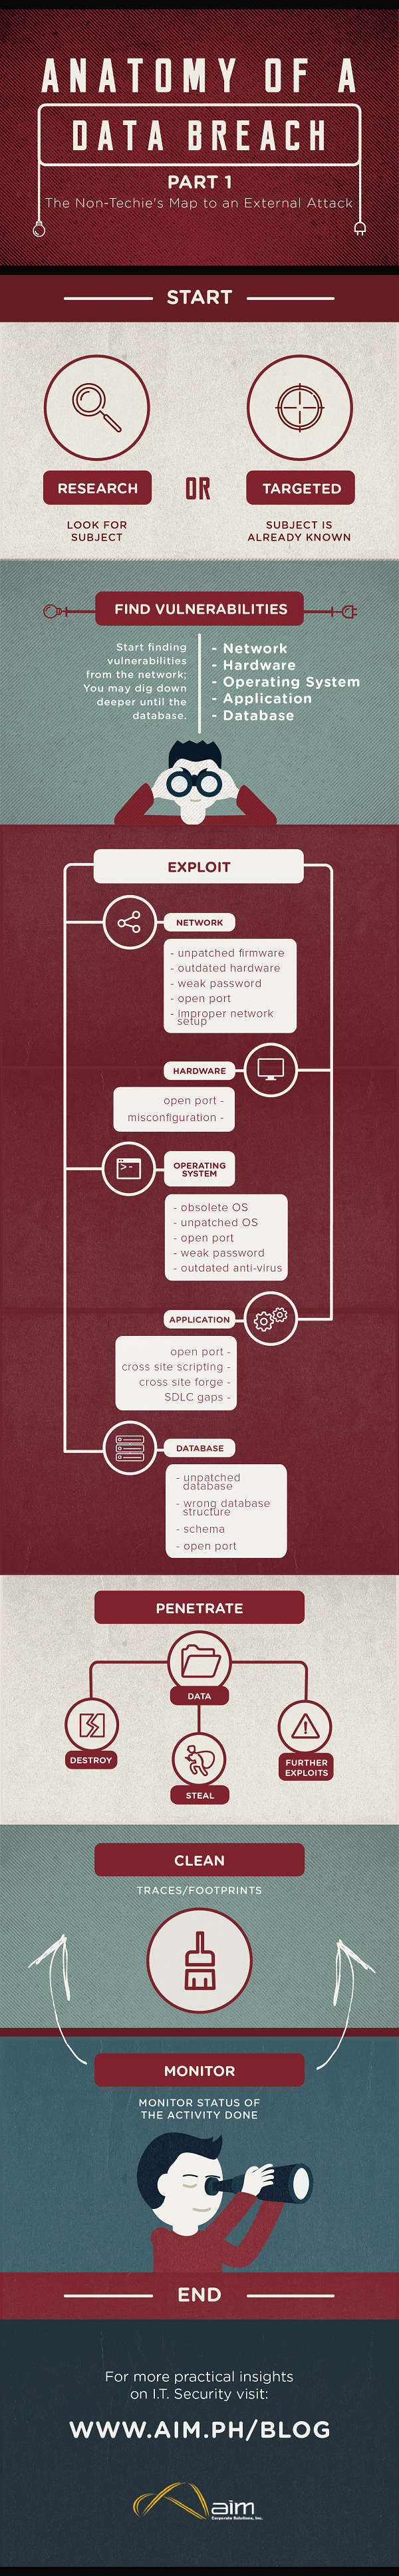 Infographic: The Non-techie\'s Map to an External Attack